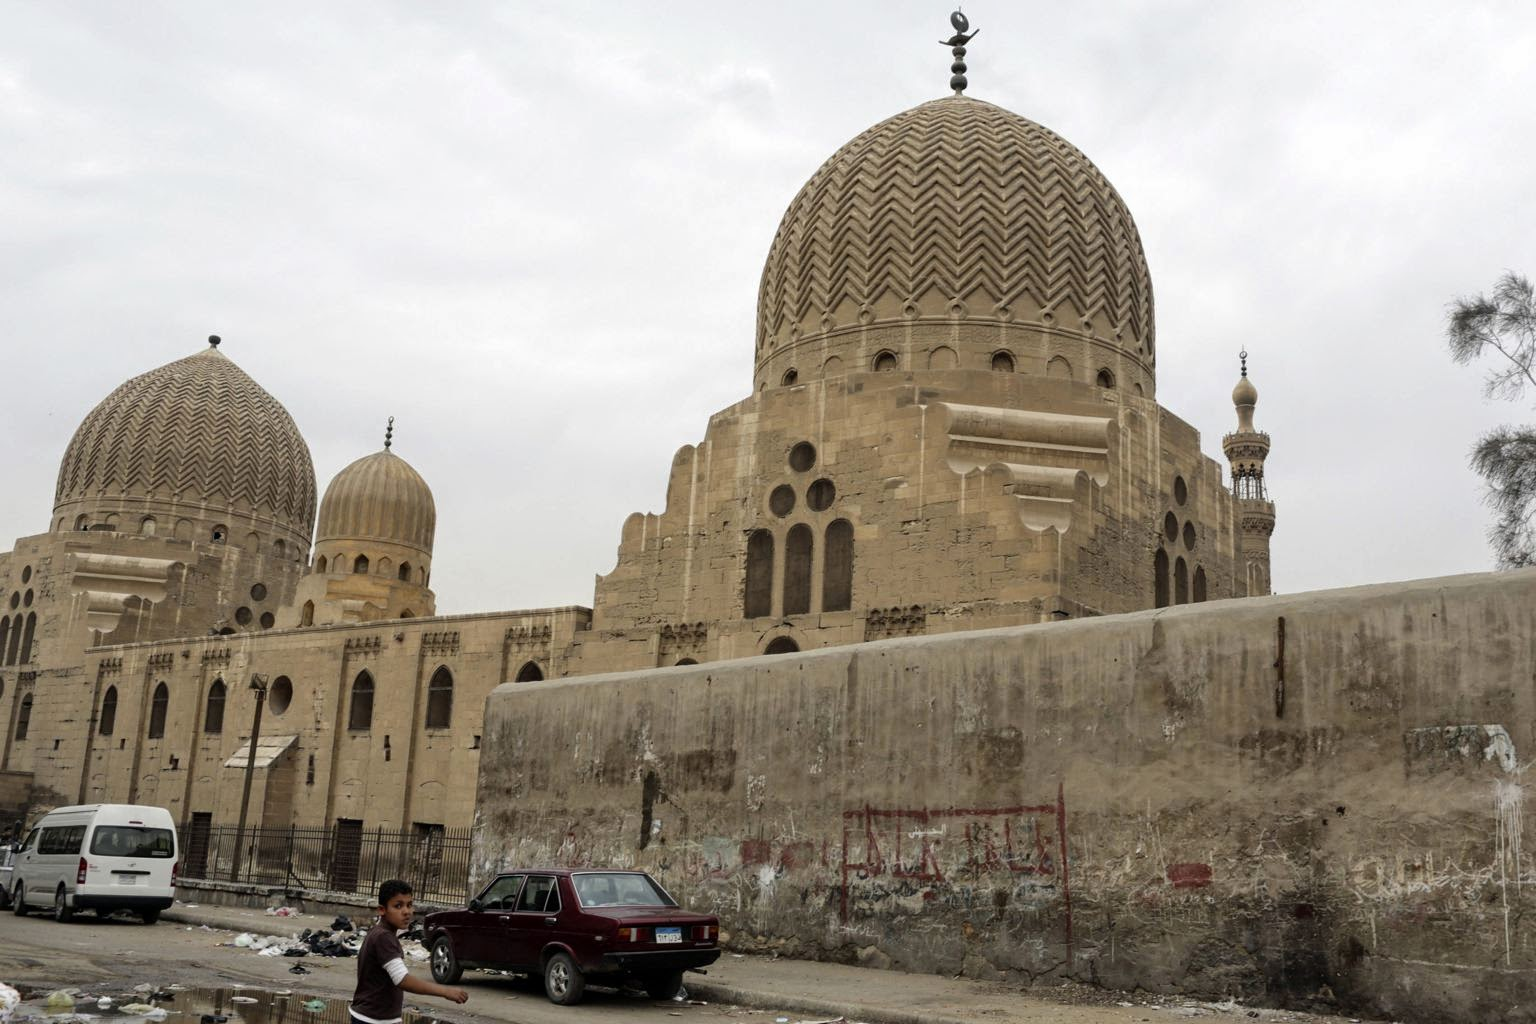 Serendipity aids Egypt recover stolen heritage